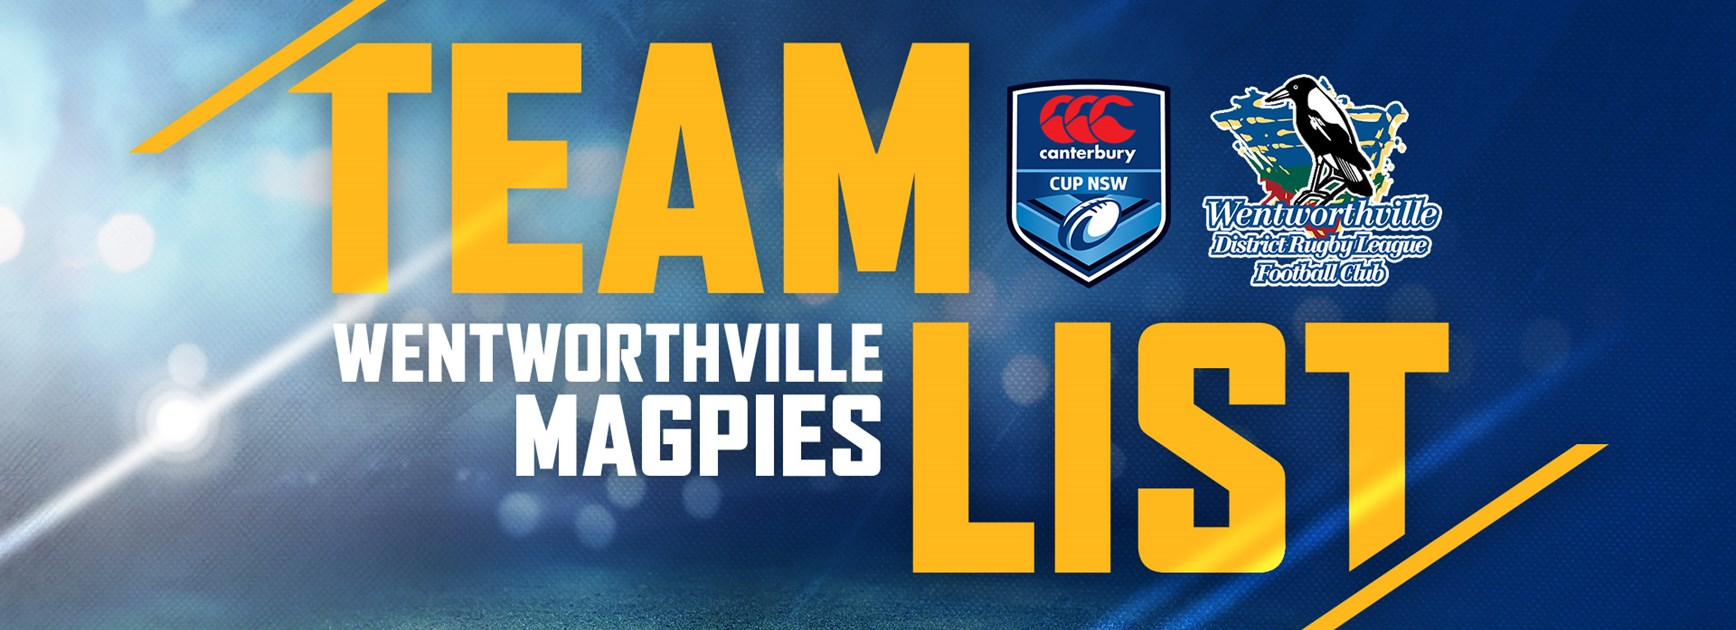 Wentworthville Magpies Round 15 Team List